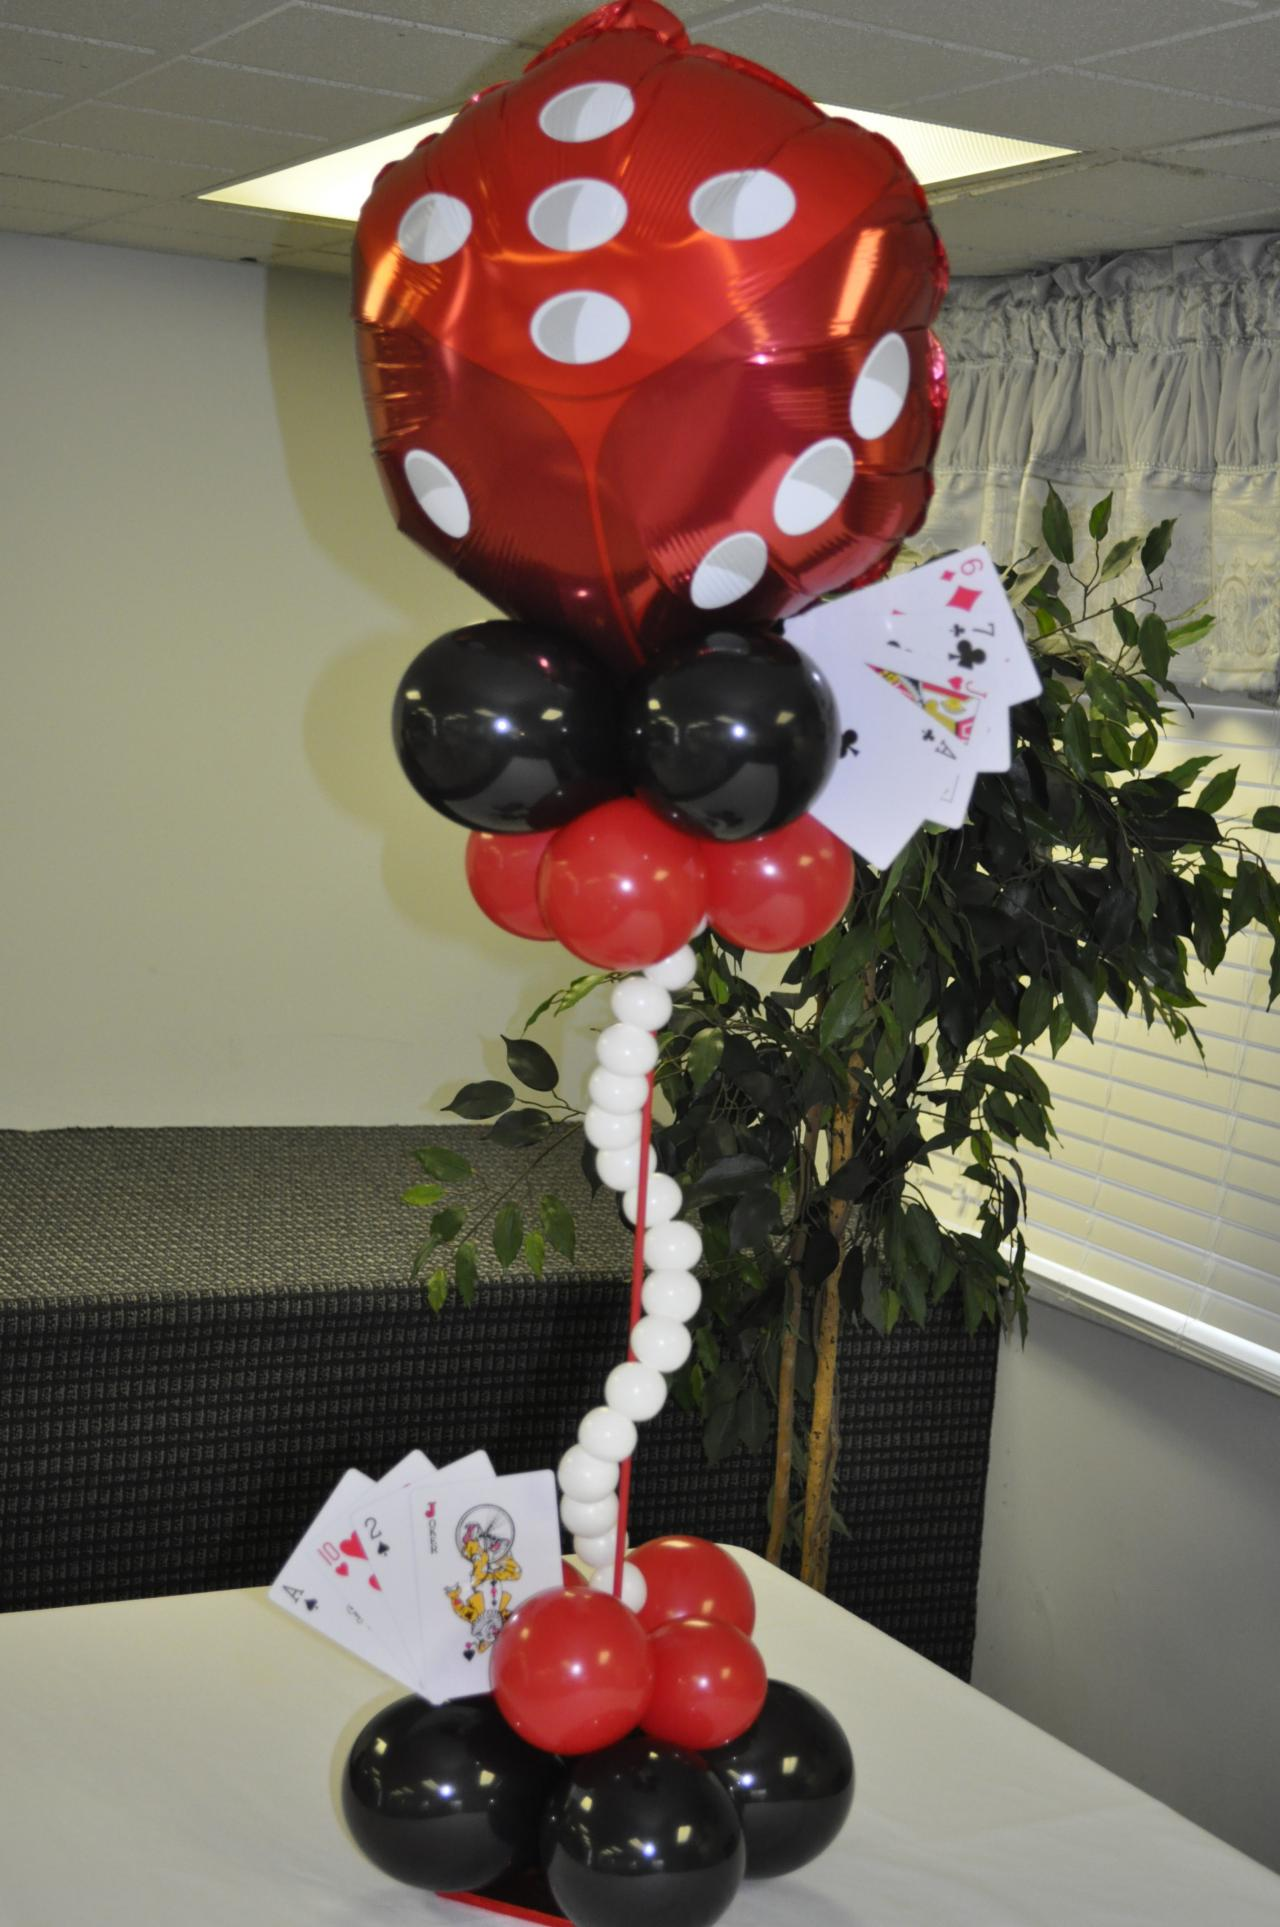 Images of heaven events balloons centerpieces for Balloon decoration centerpieces